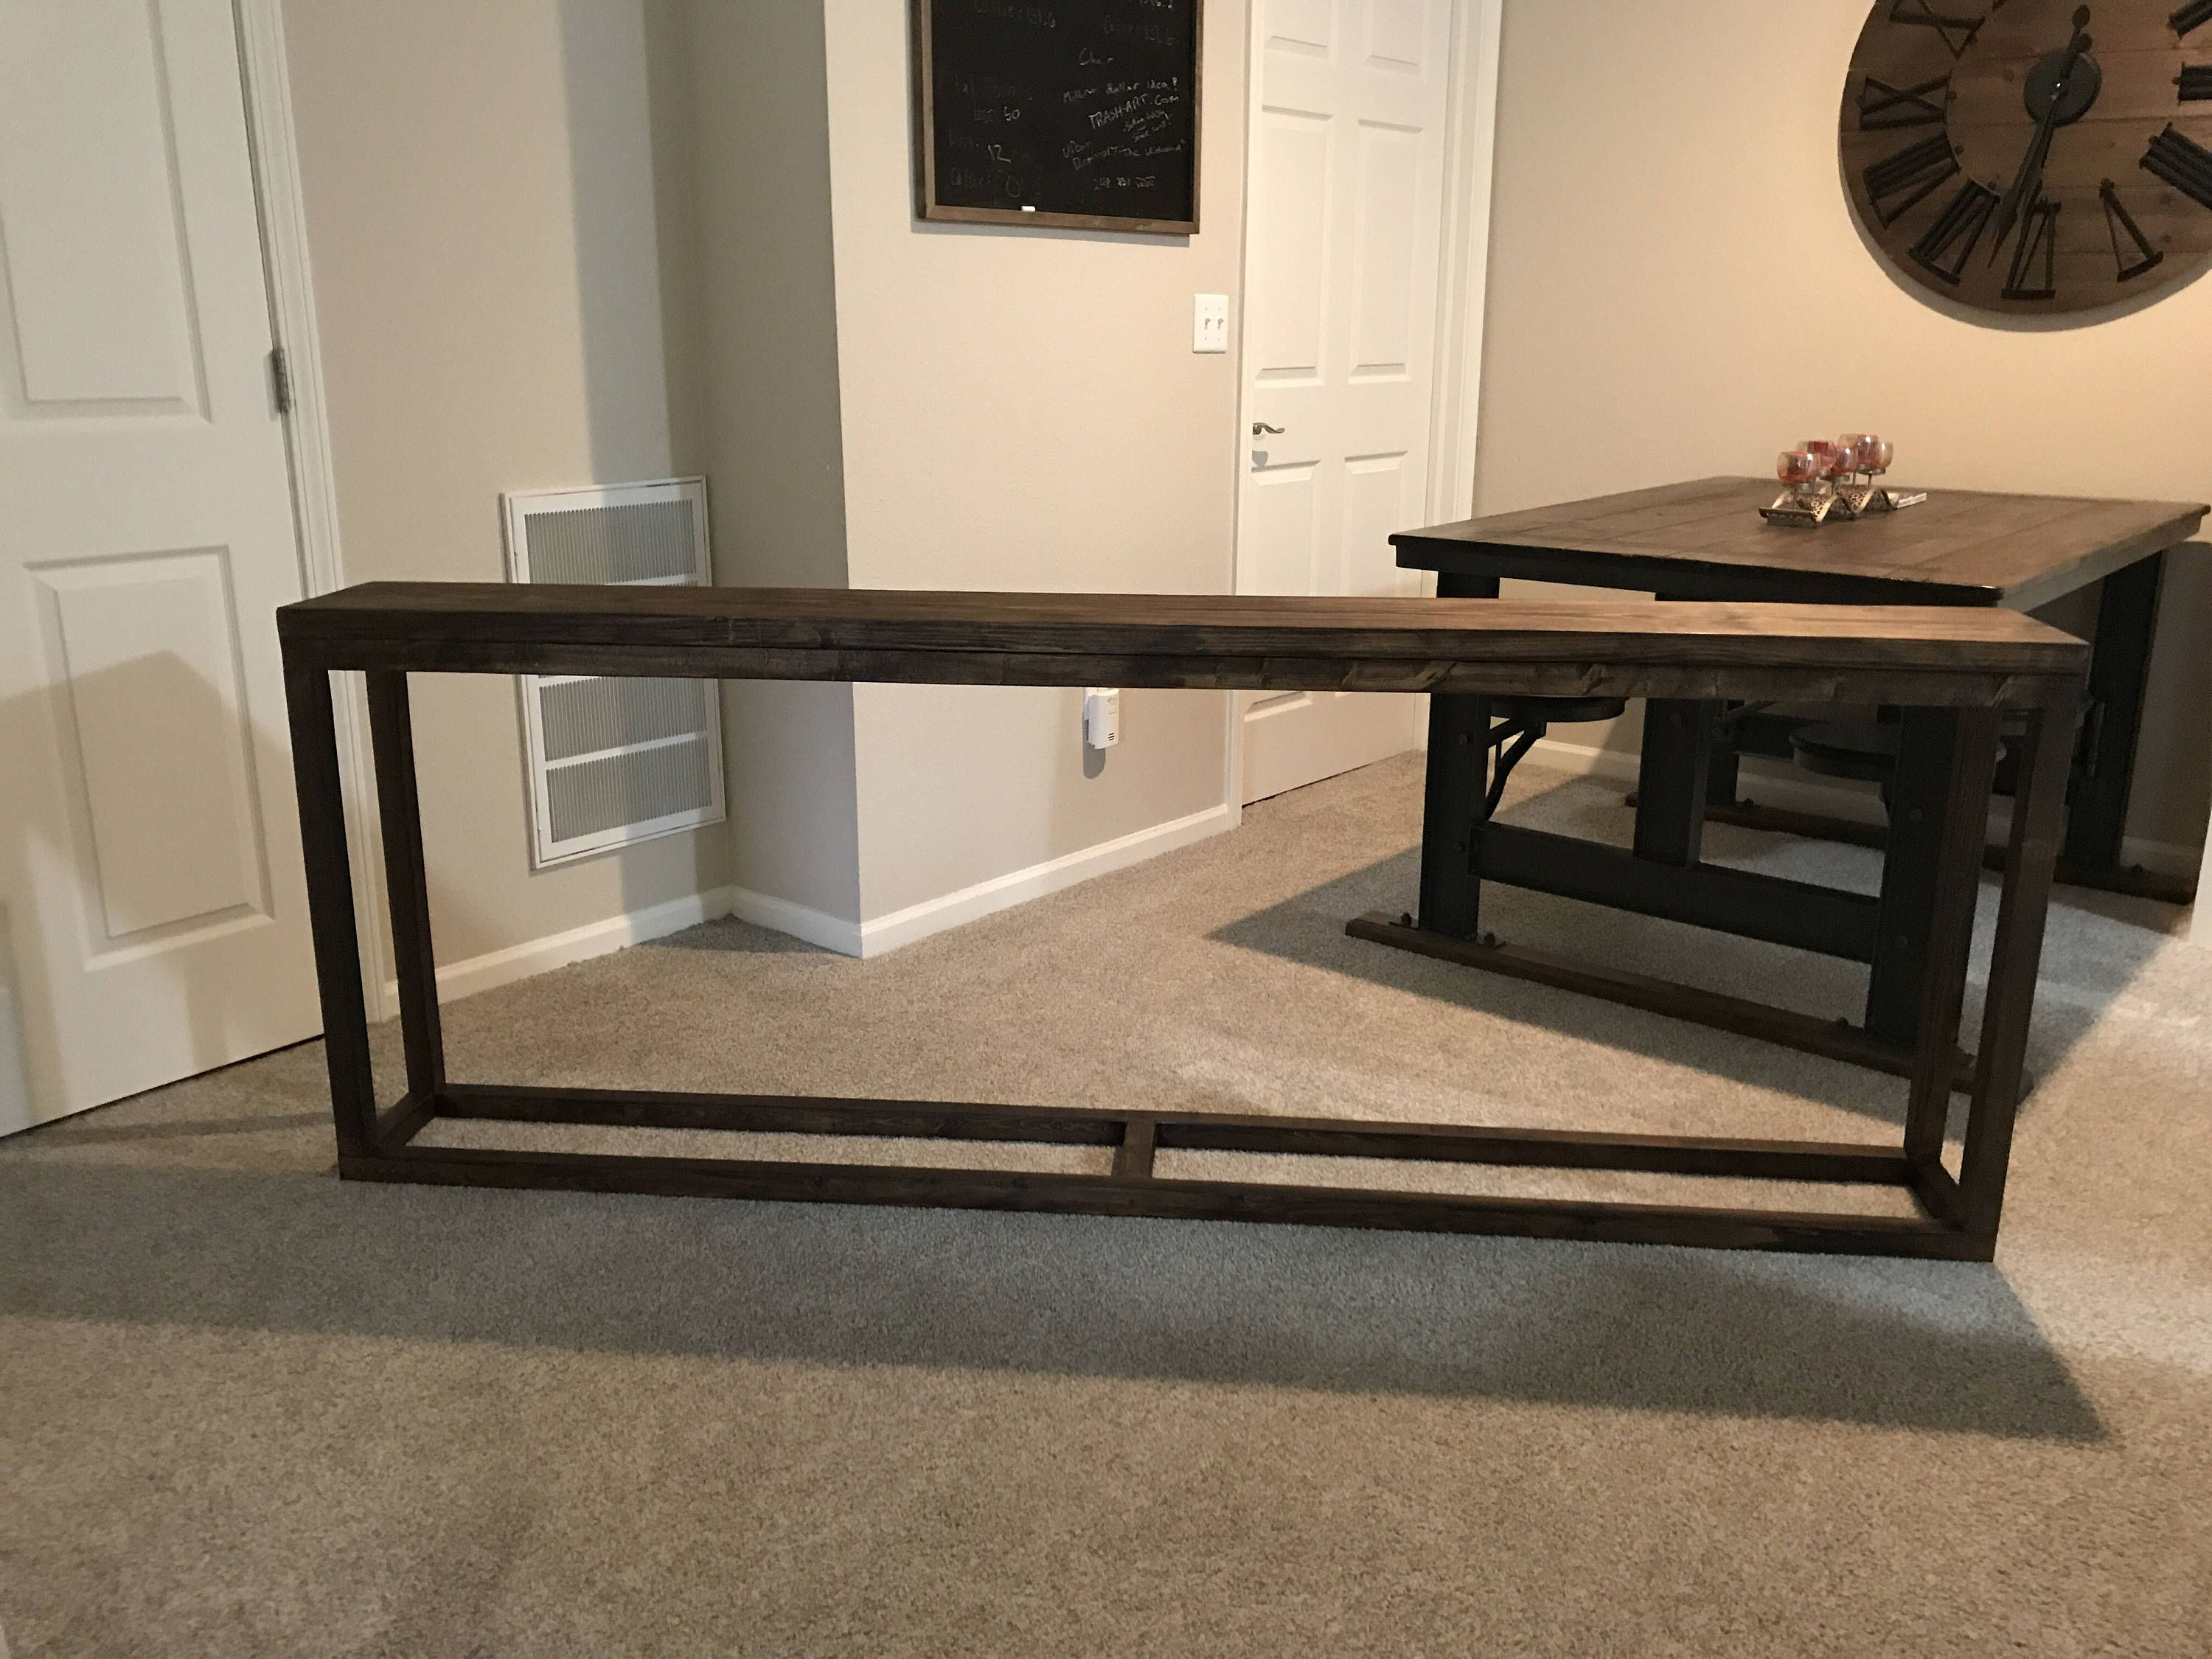 Console Table Sofa Table Behind Couch Table Behind Sofa Table Entryway Table Behind Couch Bar Living Room Bar Long Narrow Narrow Sofa Table Sofa Table Behind Sofa Table